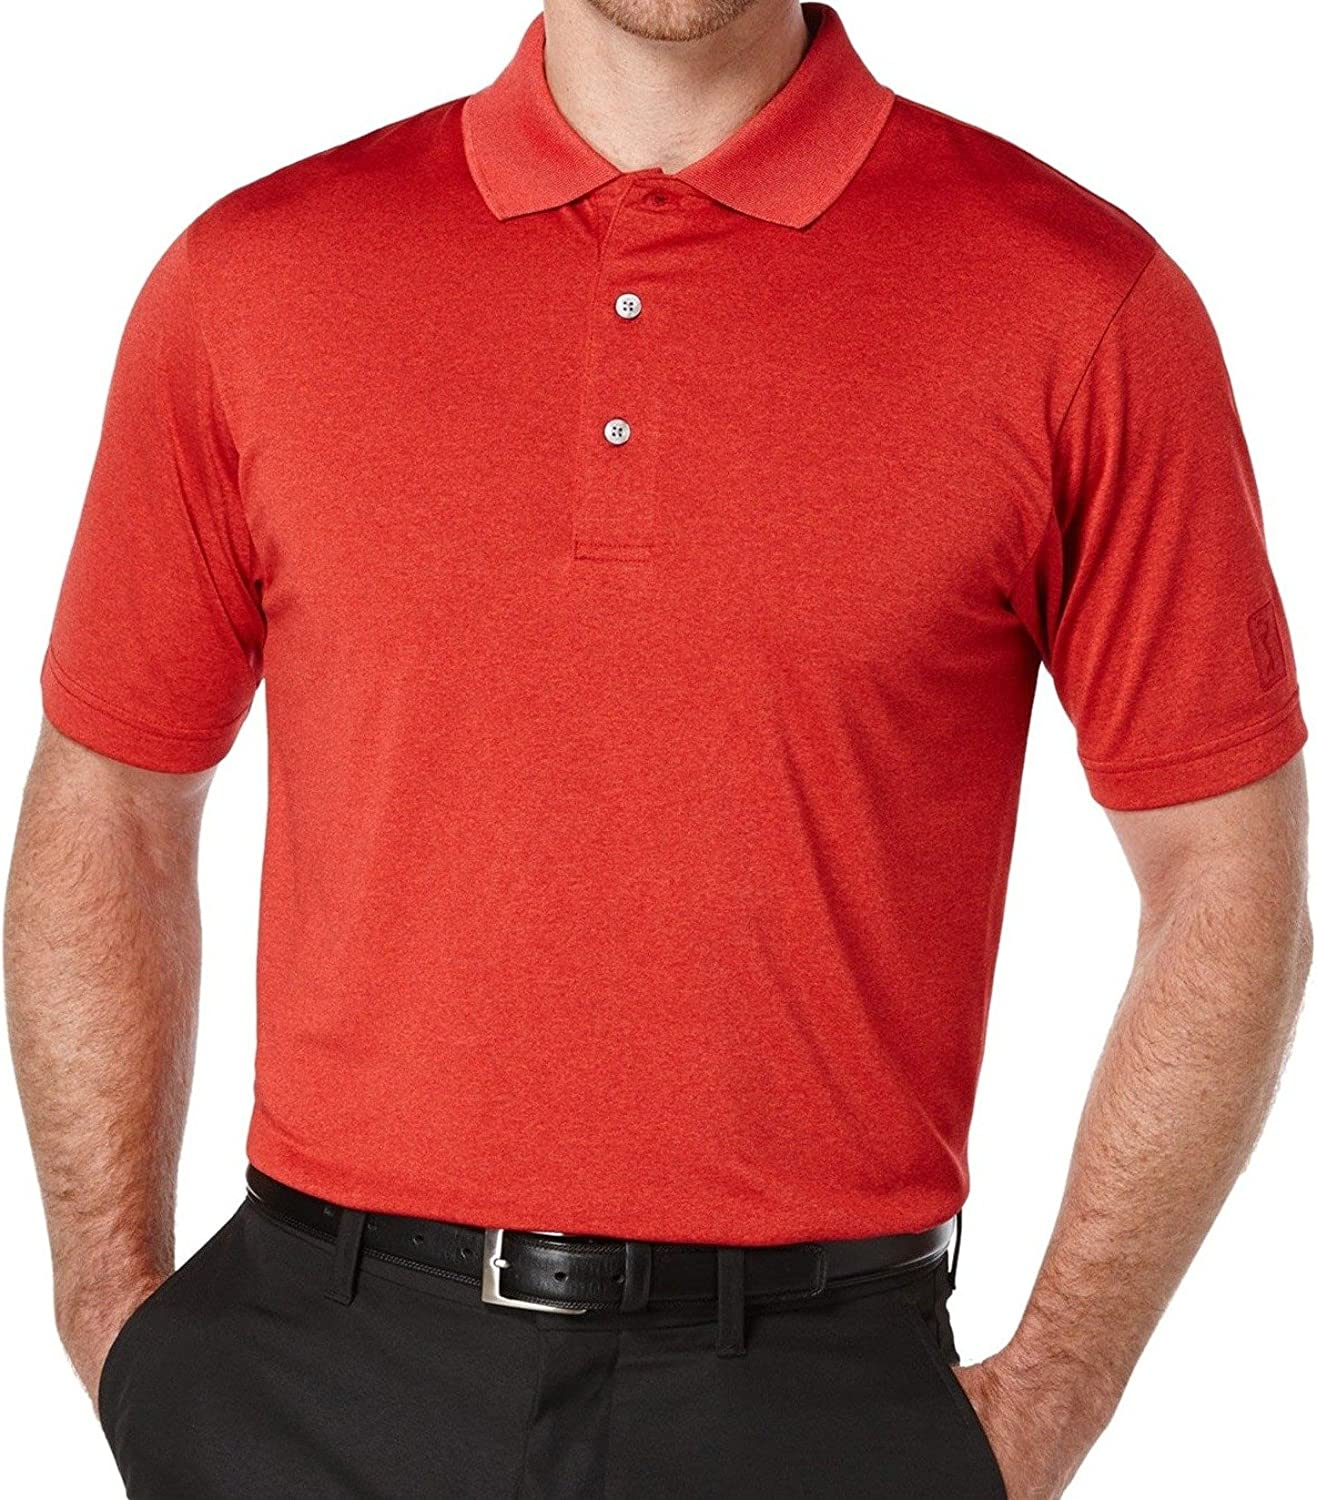 PGA Special Dealing full price reduction Campaign TOUR Mens Heathered Rugby Large Red Shirt Polo